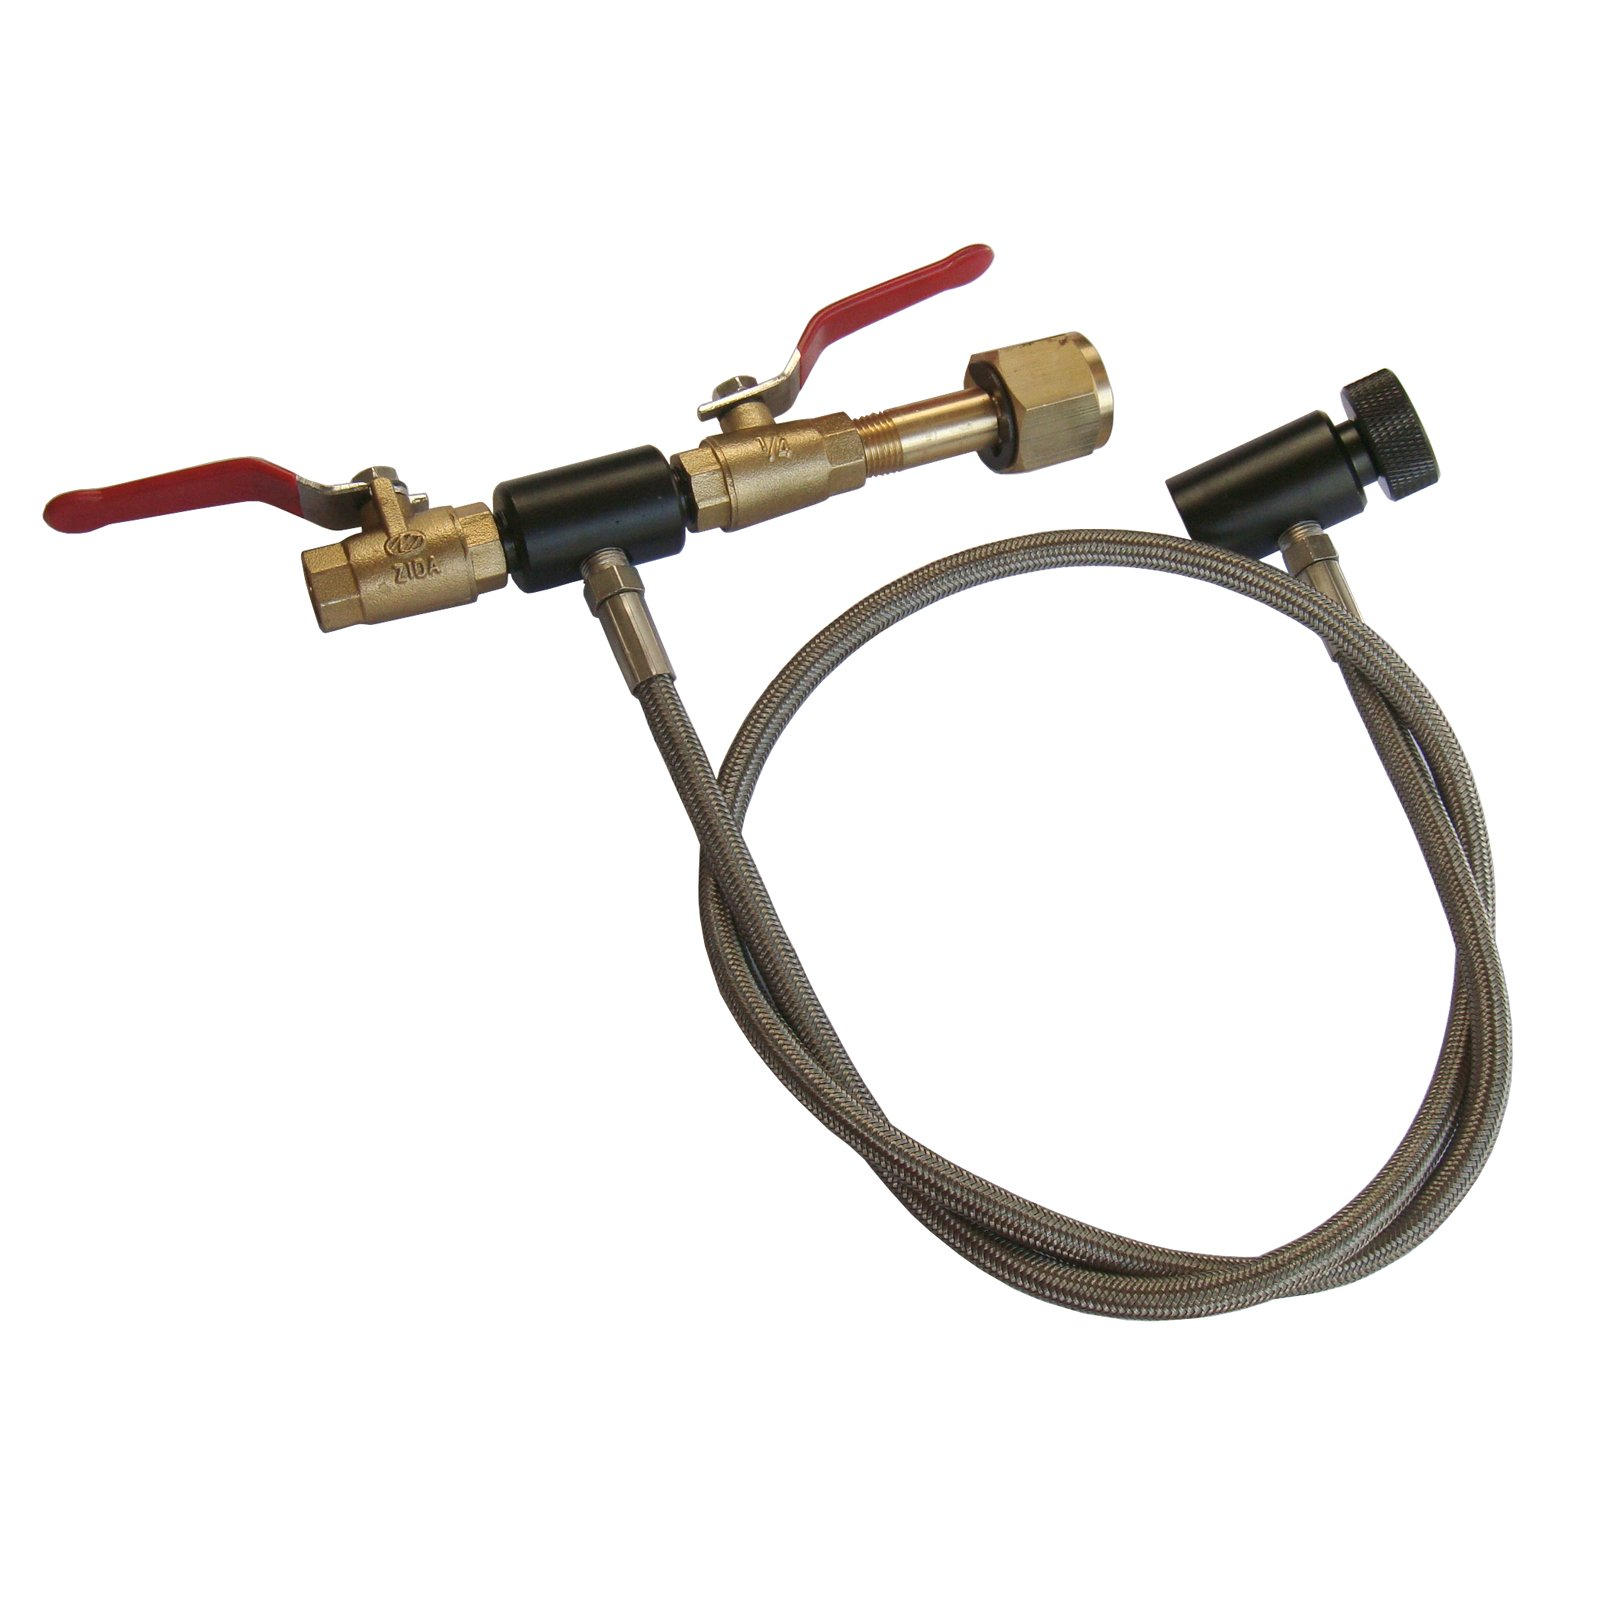 New 36'' Paintball Deluxe Dual Valve Co2 Fill Station-Stainless Steel Braided Hose Line by GFSP Outdoor Sports